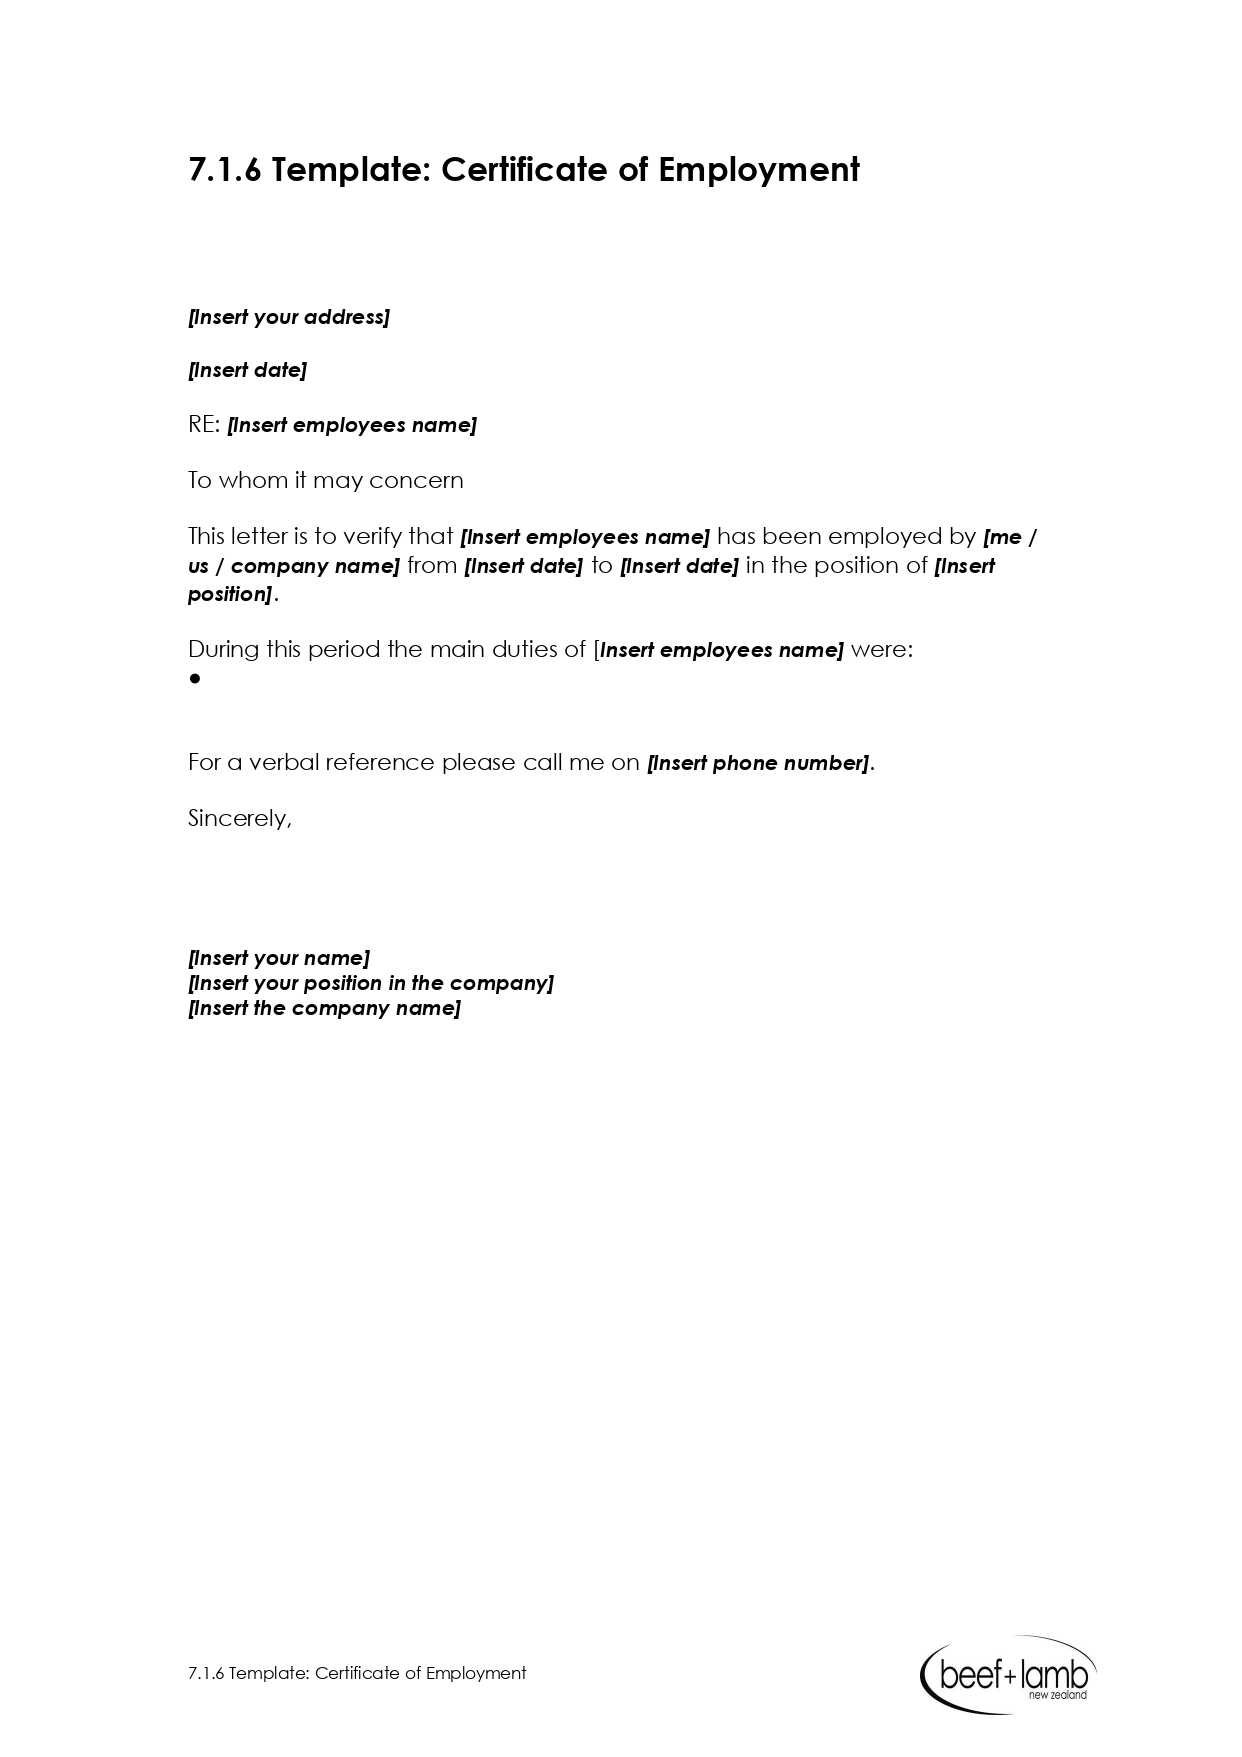 Editable Certificate Of Employment Template - Google Docs in Template Of Certificate Of Employment